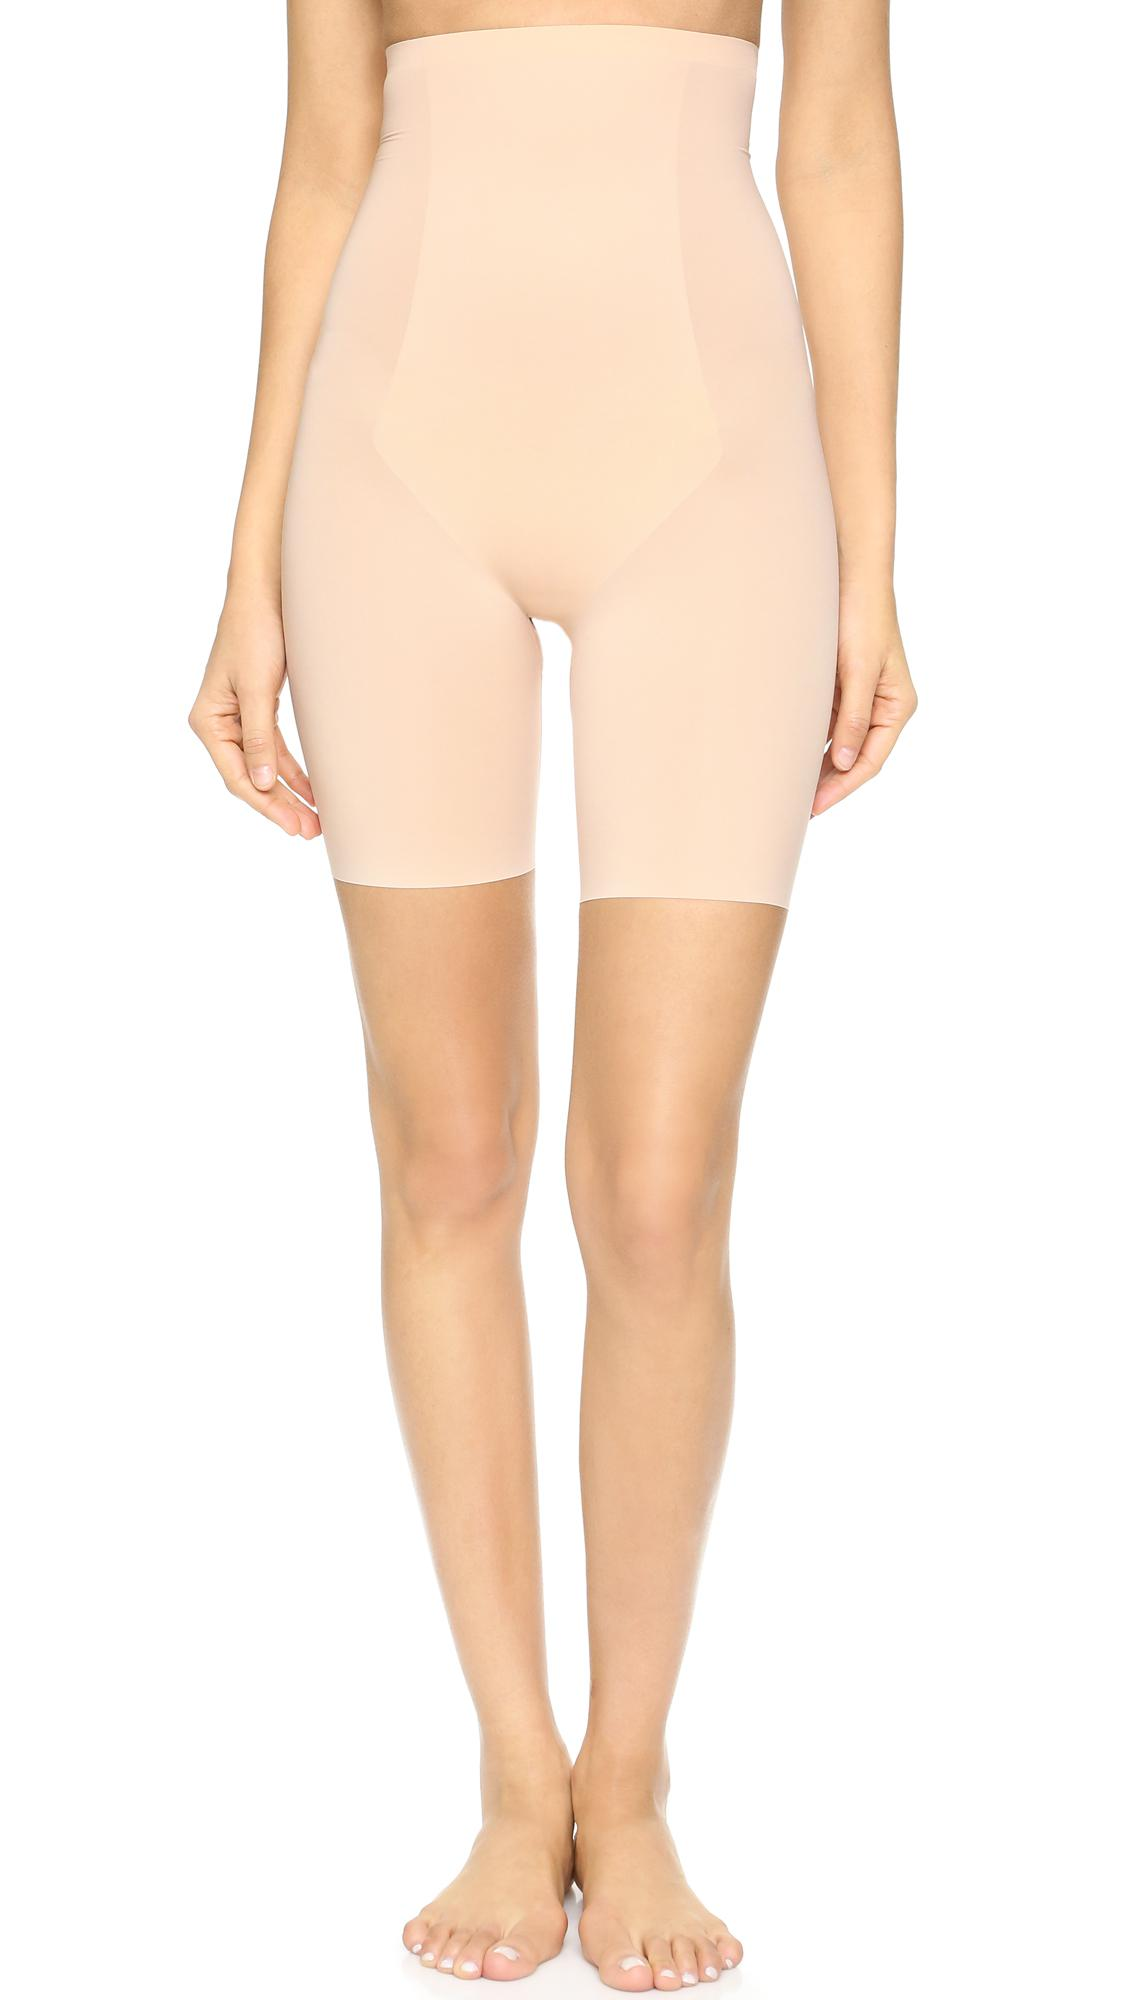 49284f0011edf Lyst - Spanx Thinstincts High Waisted Mid-thigh Shorts in Natural